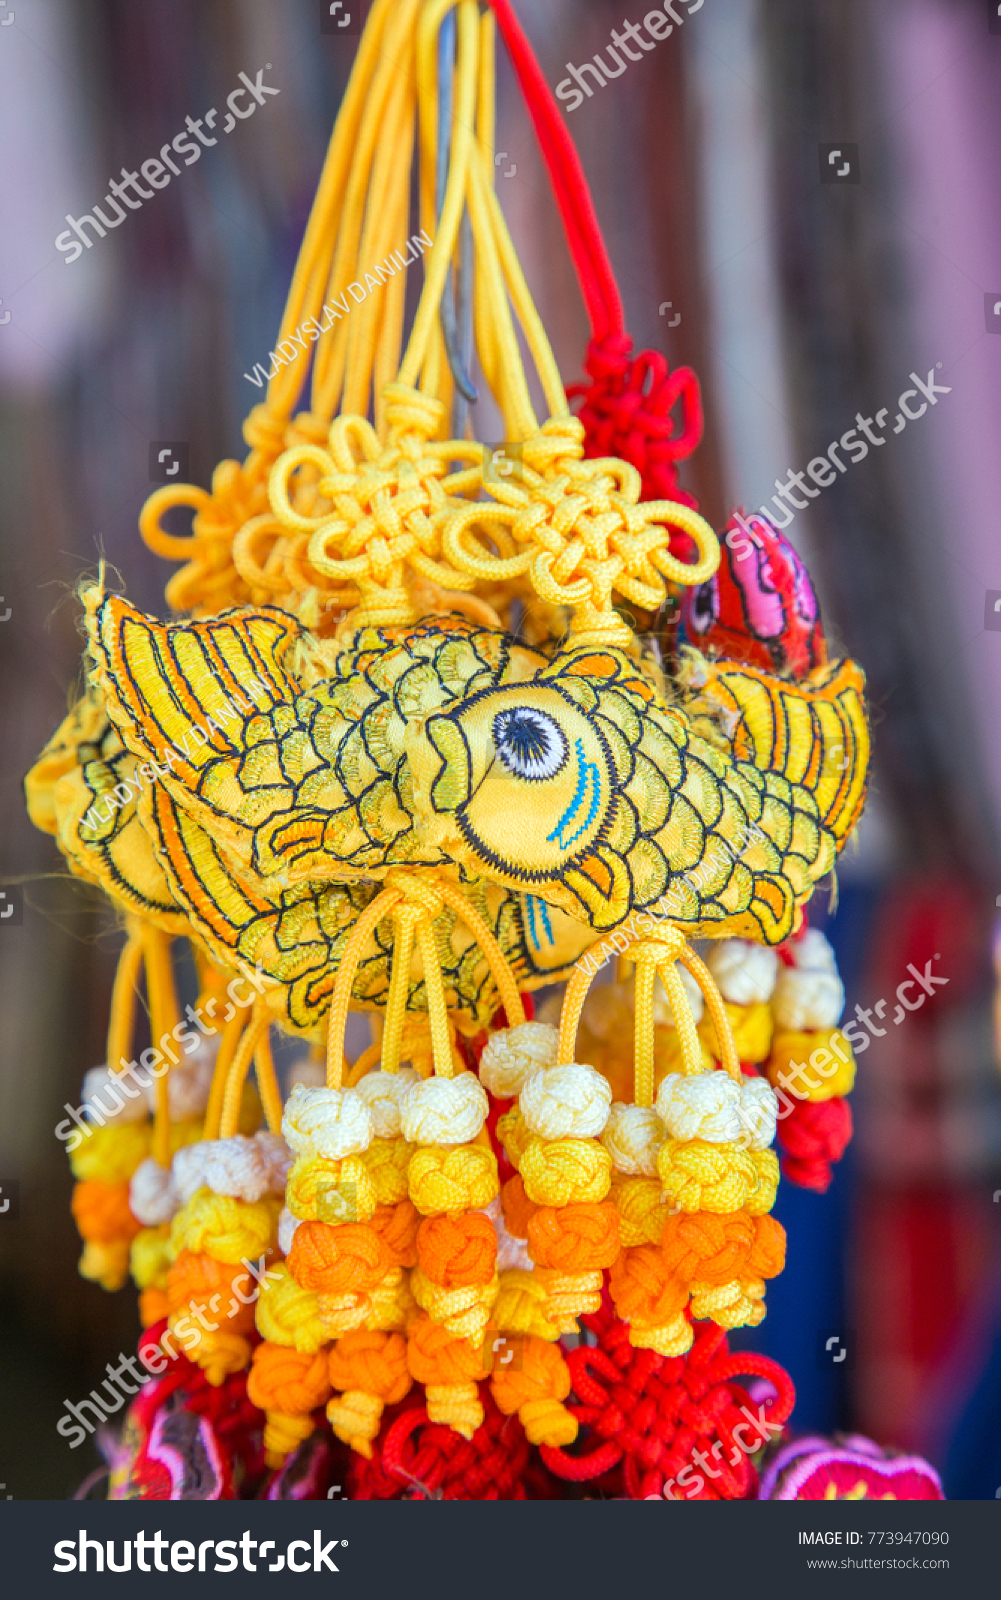 China amulet traditional chinese good luck stock photo 773947090 china amulet traditional chinese good luck knots with carp symbols of rich happiness biocorpaavc